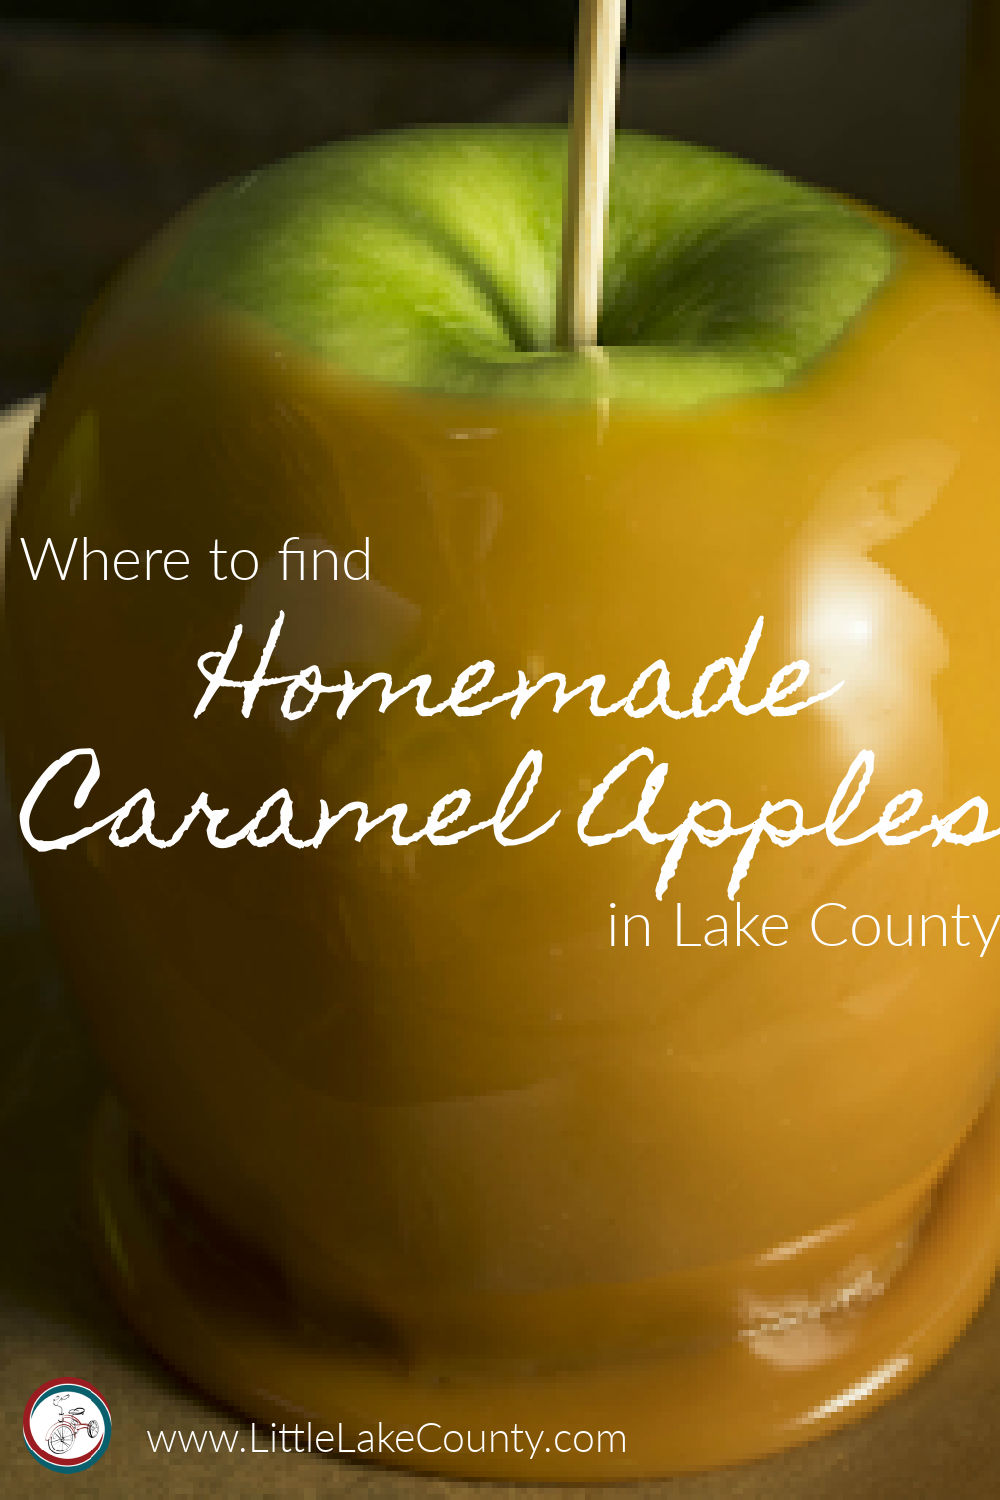 Where to Find Caramel Apples in Lake County